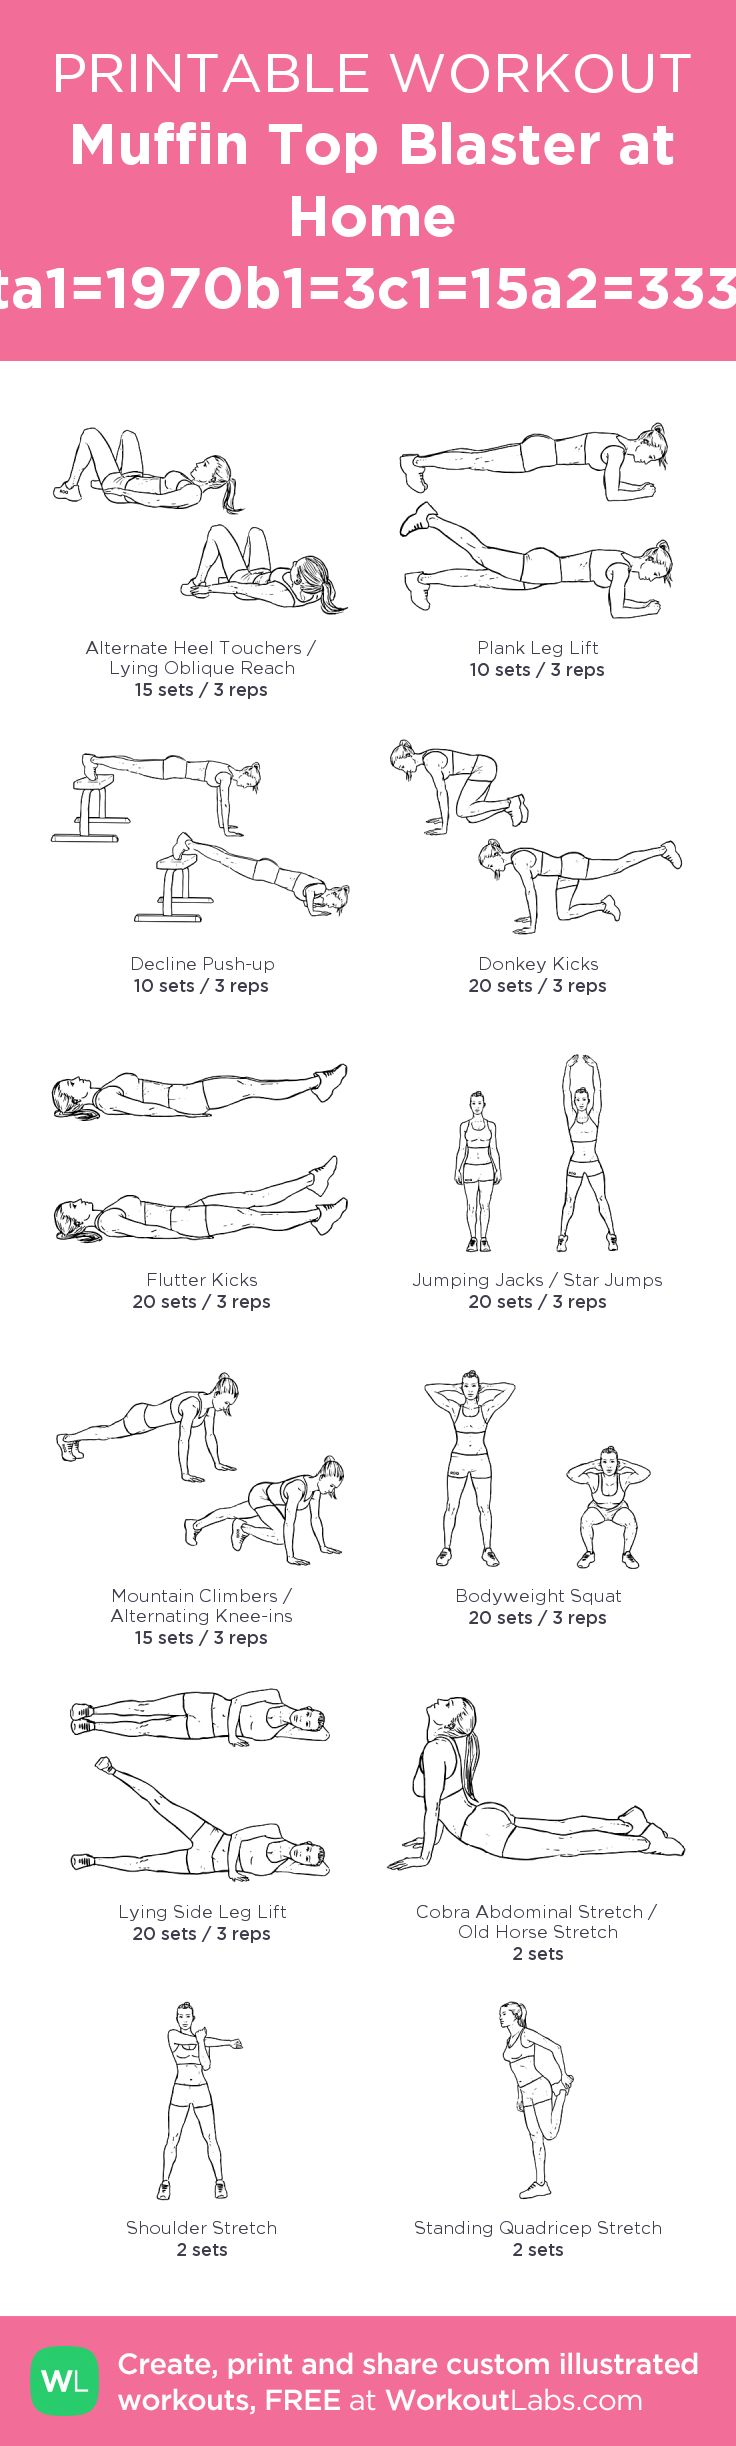 My personal ABS workout! Muffin Top Blaster at Home Workouta1=1970b1=3c1=15a2=3338b2=3c2 – my custom workout created at WorkoutLabs.com • Click through to download as printable PDF! #customworkout